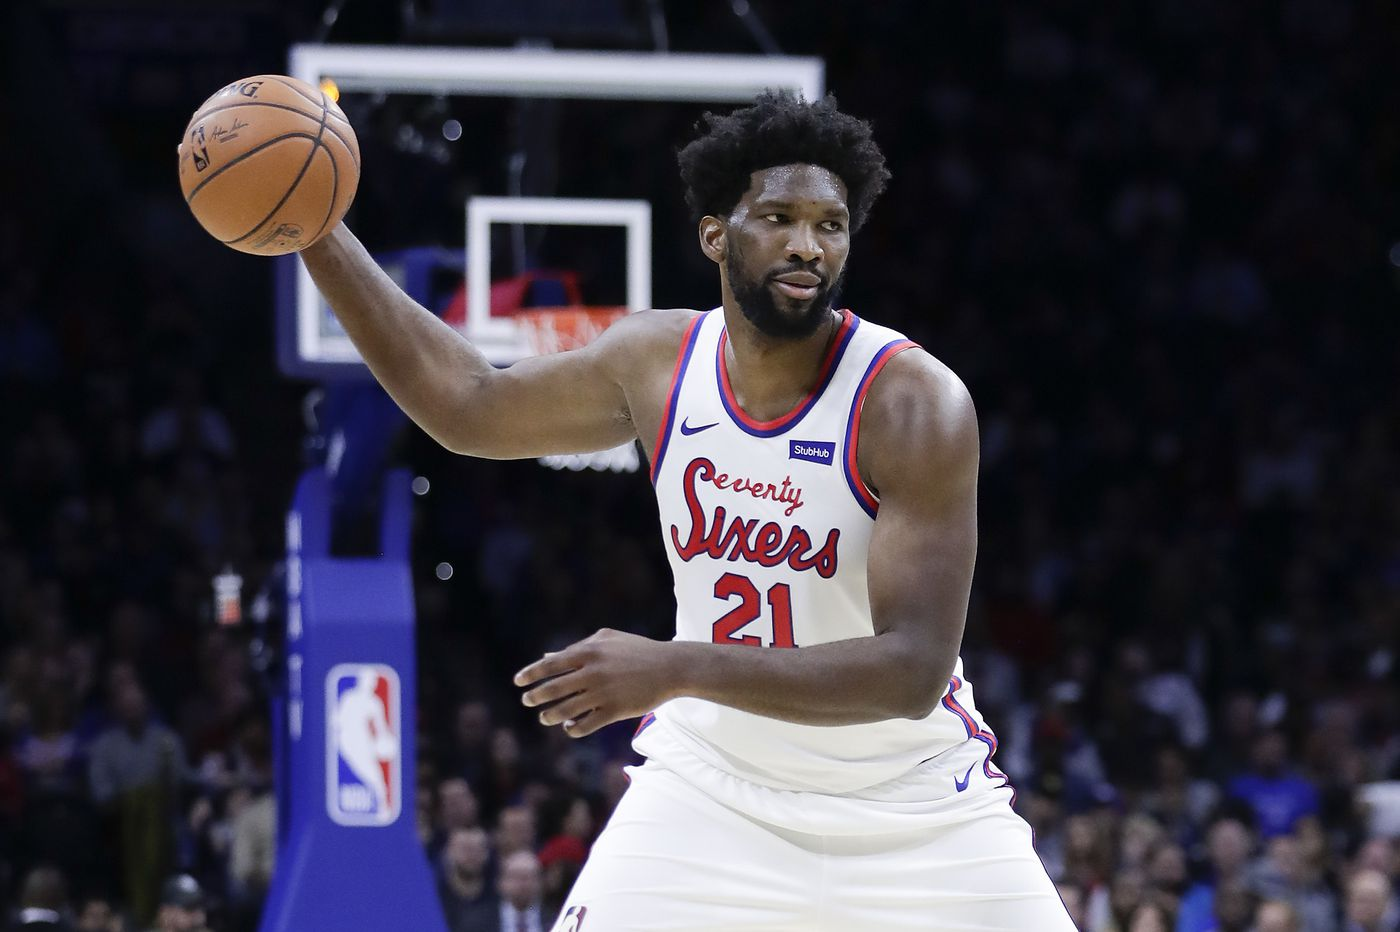 Sixers were lucky to land Joel Embiid in 2014 | Keith Pompey